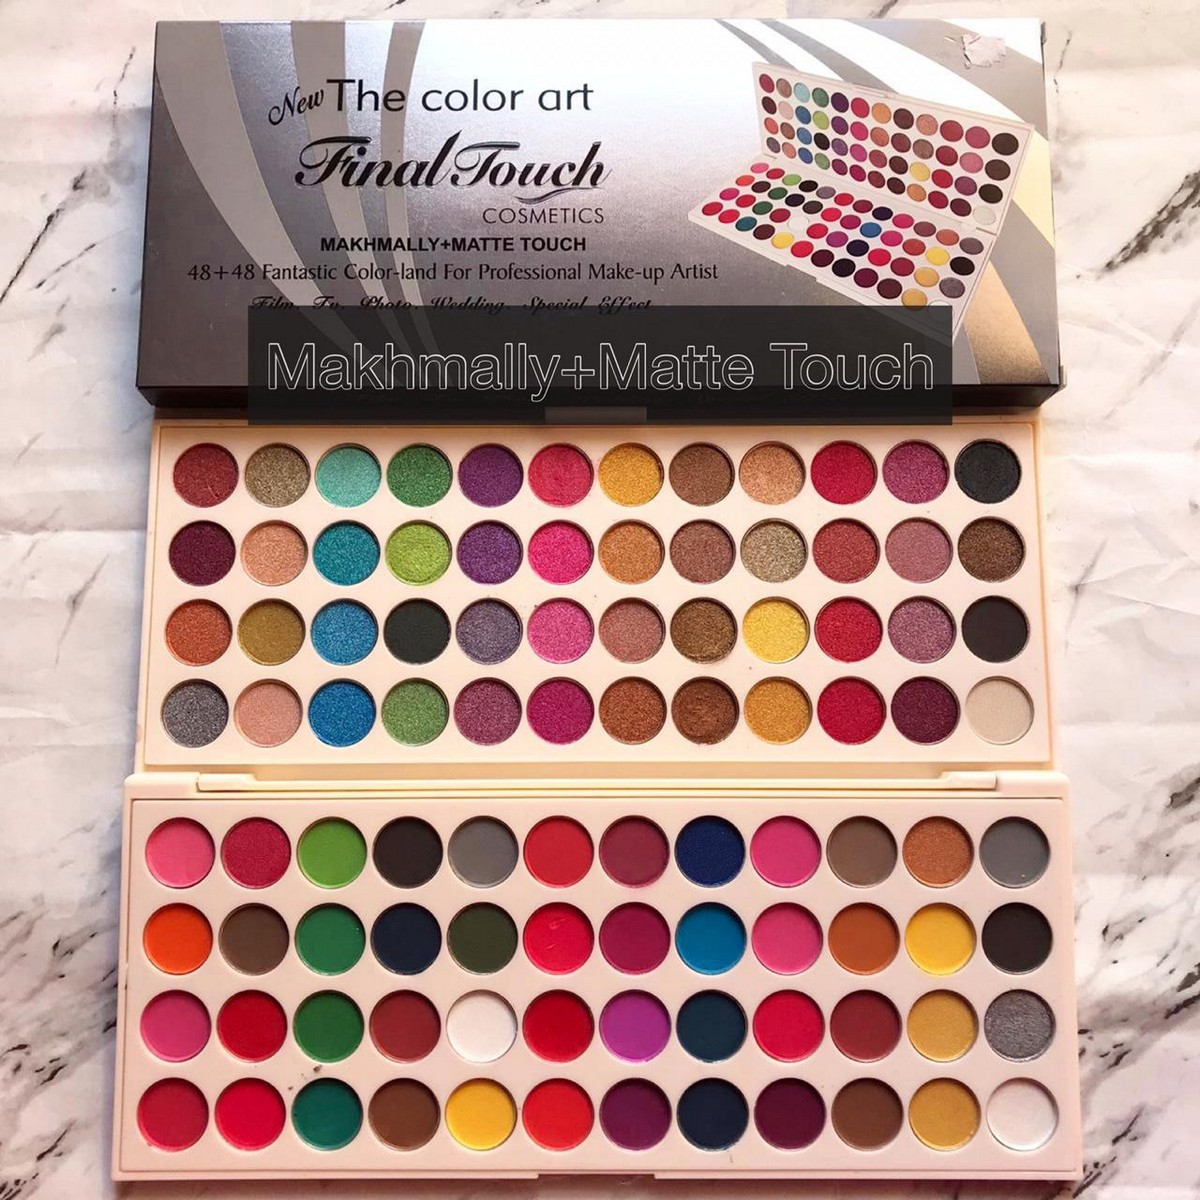 Glowing face Matte Shimmer 96 color eyeshadow palette